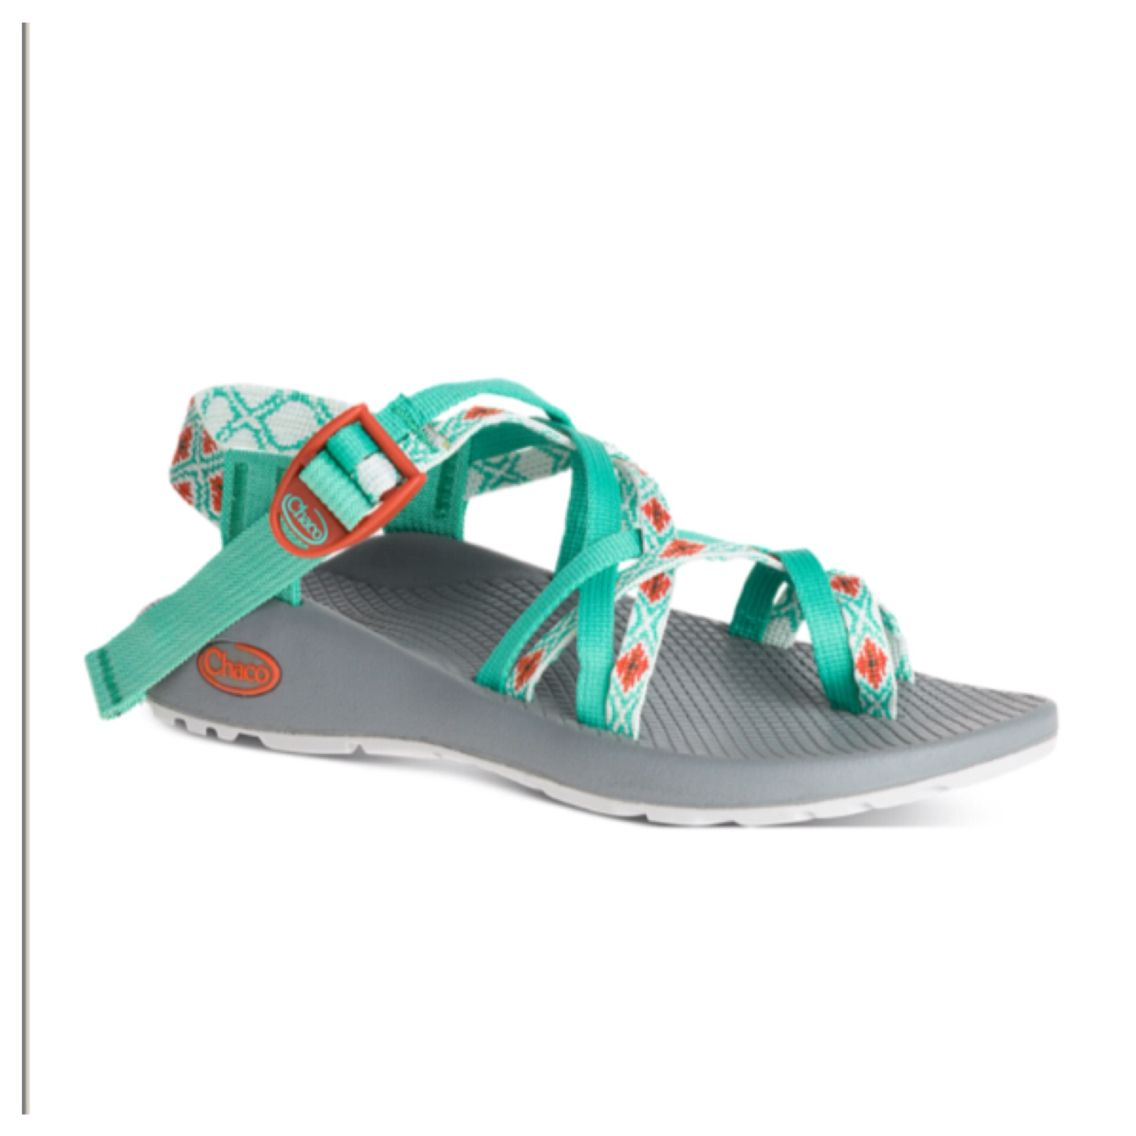 e846565b75d5 Cute chaco s you can find at chacos.com.